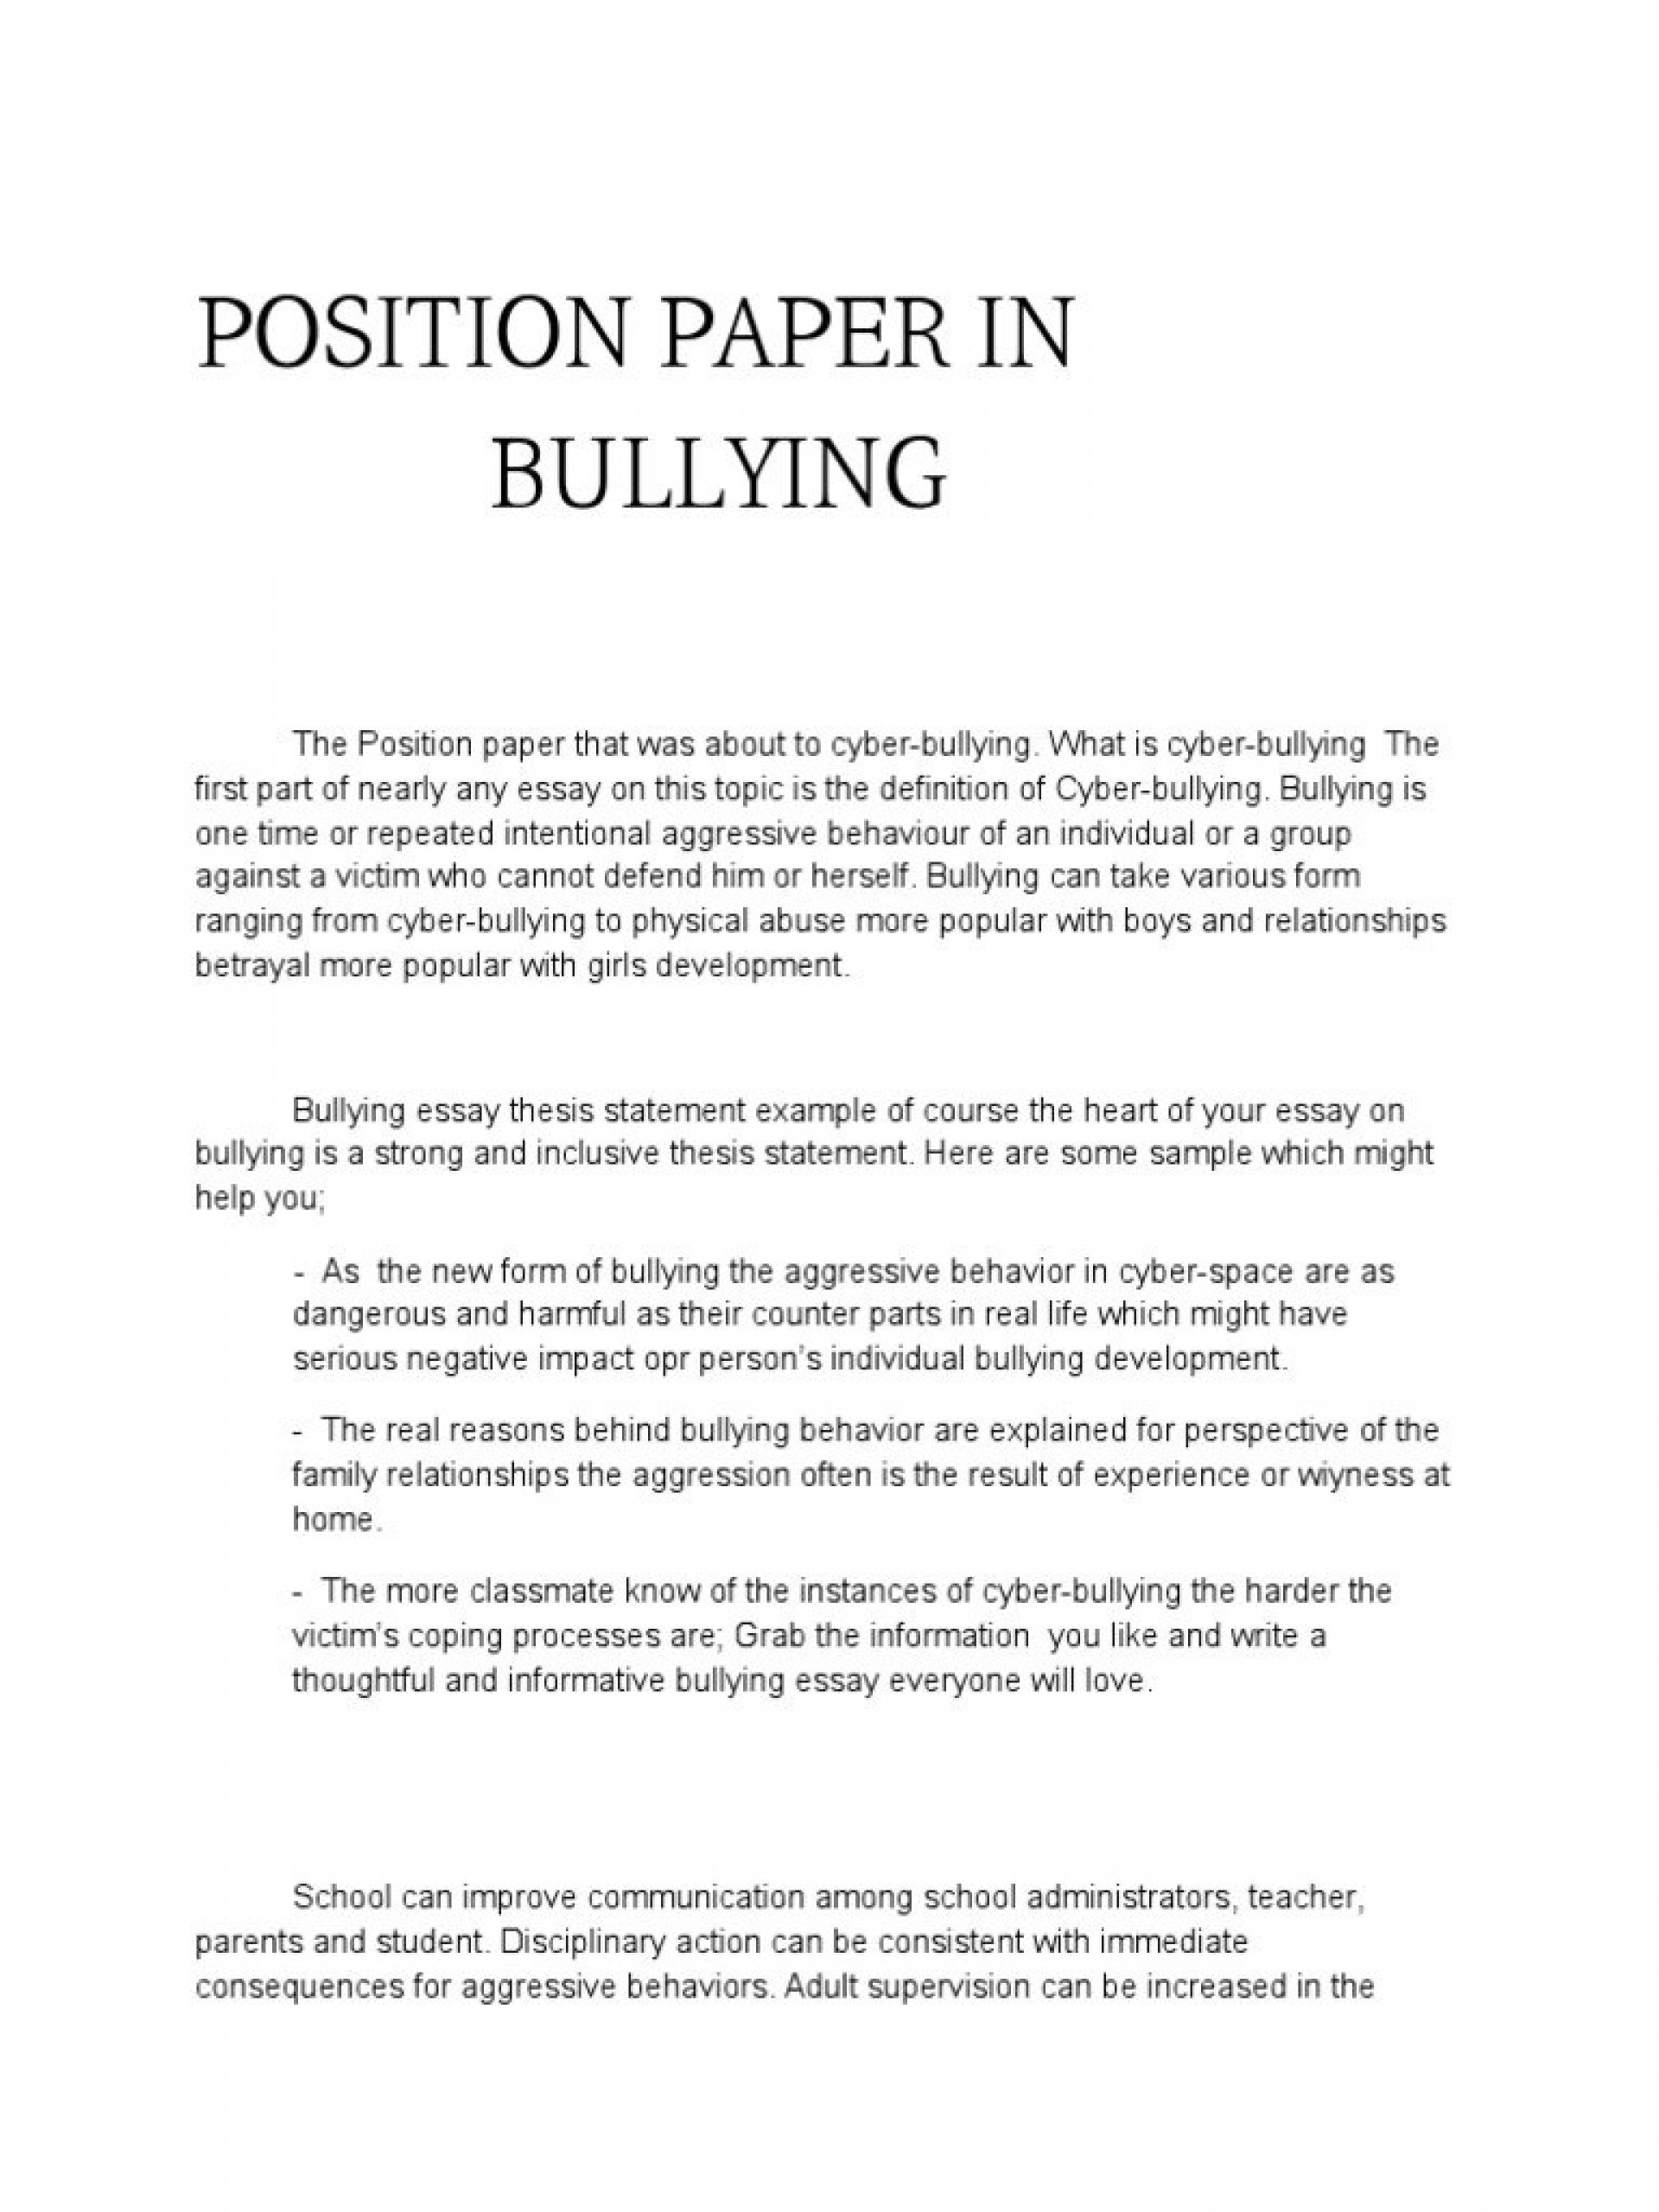 005 Bullying Essay Example Good Conclusion For Academic Writing Service Cause And Effect On In Awful Topics Cyber Titles Persuasive Ideas 1920